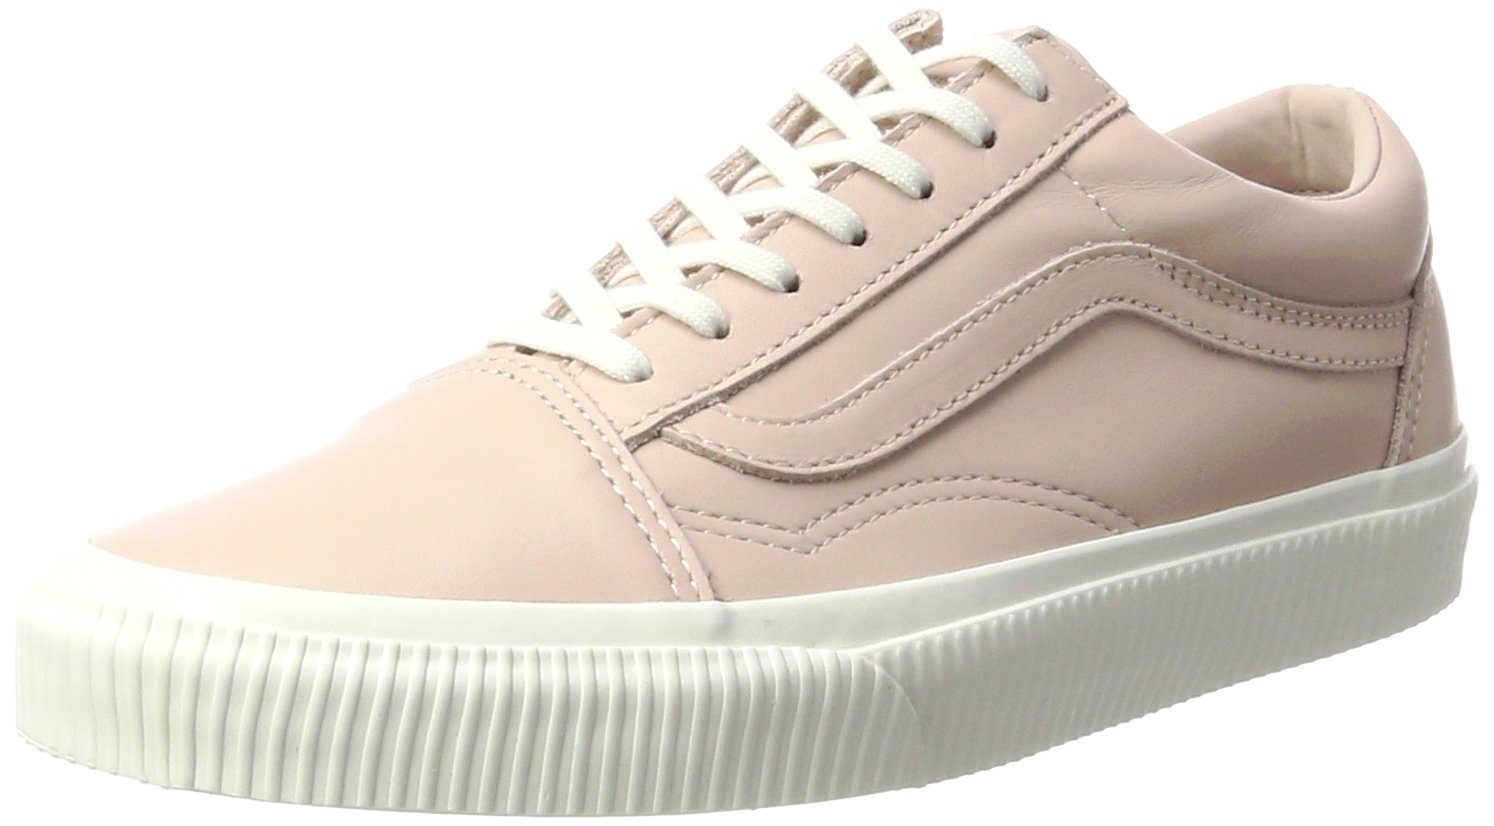 Vans Unisex Old Skool Classic Skate Shoes B01N0Q4YT3 8.5 M US Women / 7 M US Men|Pink